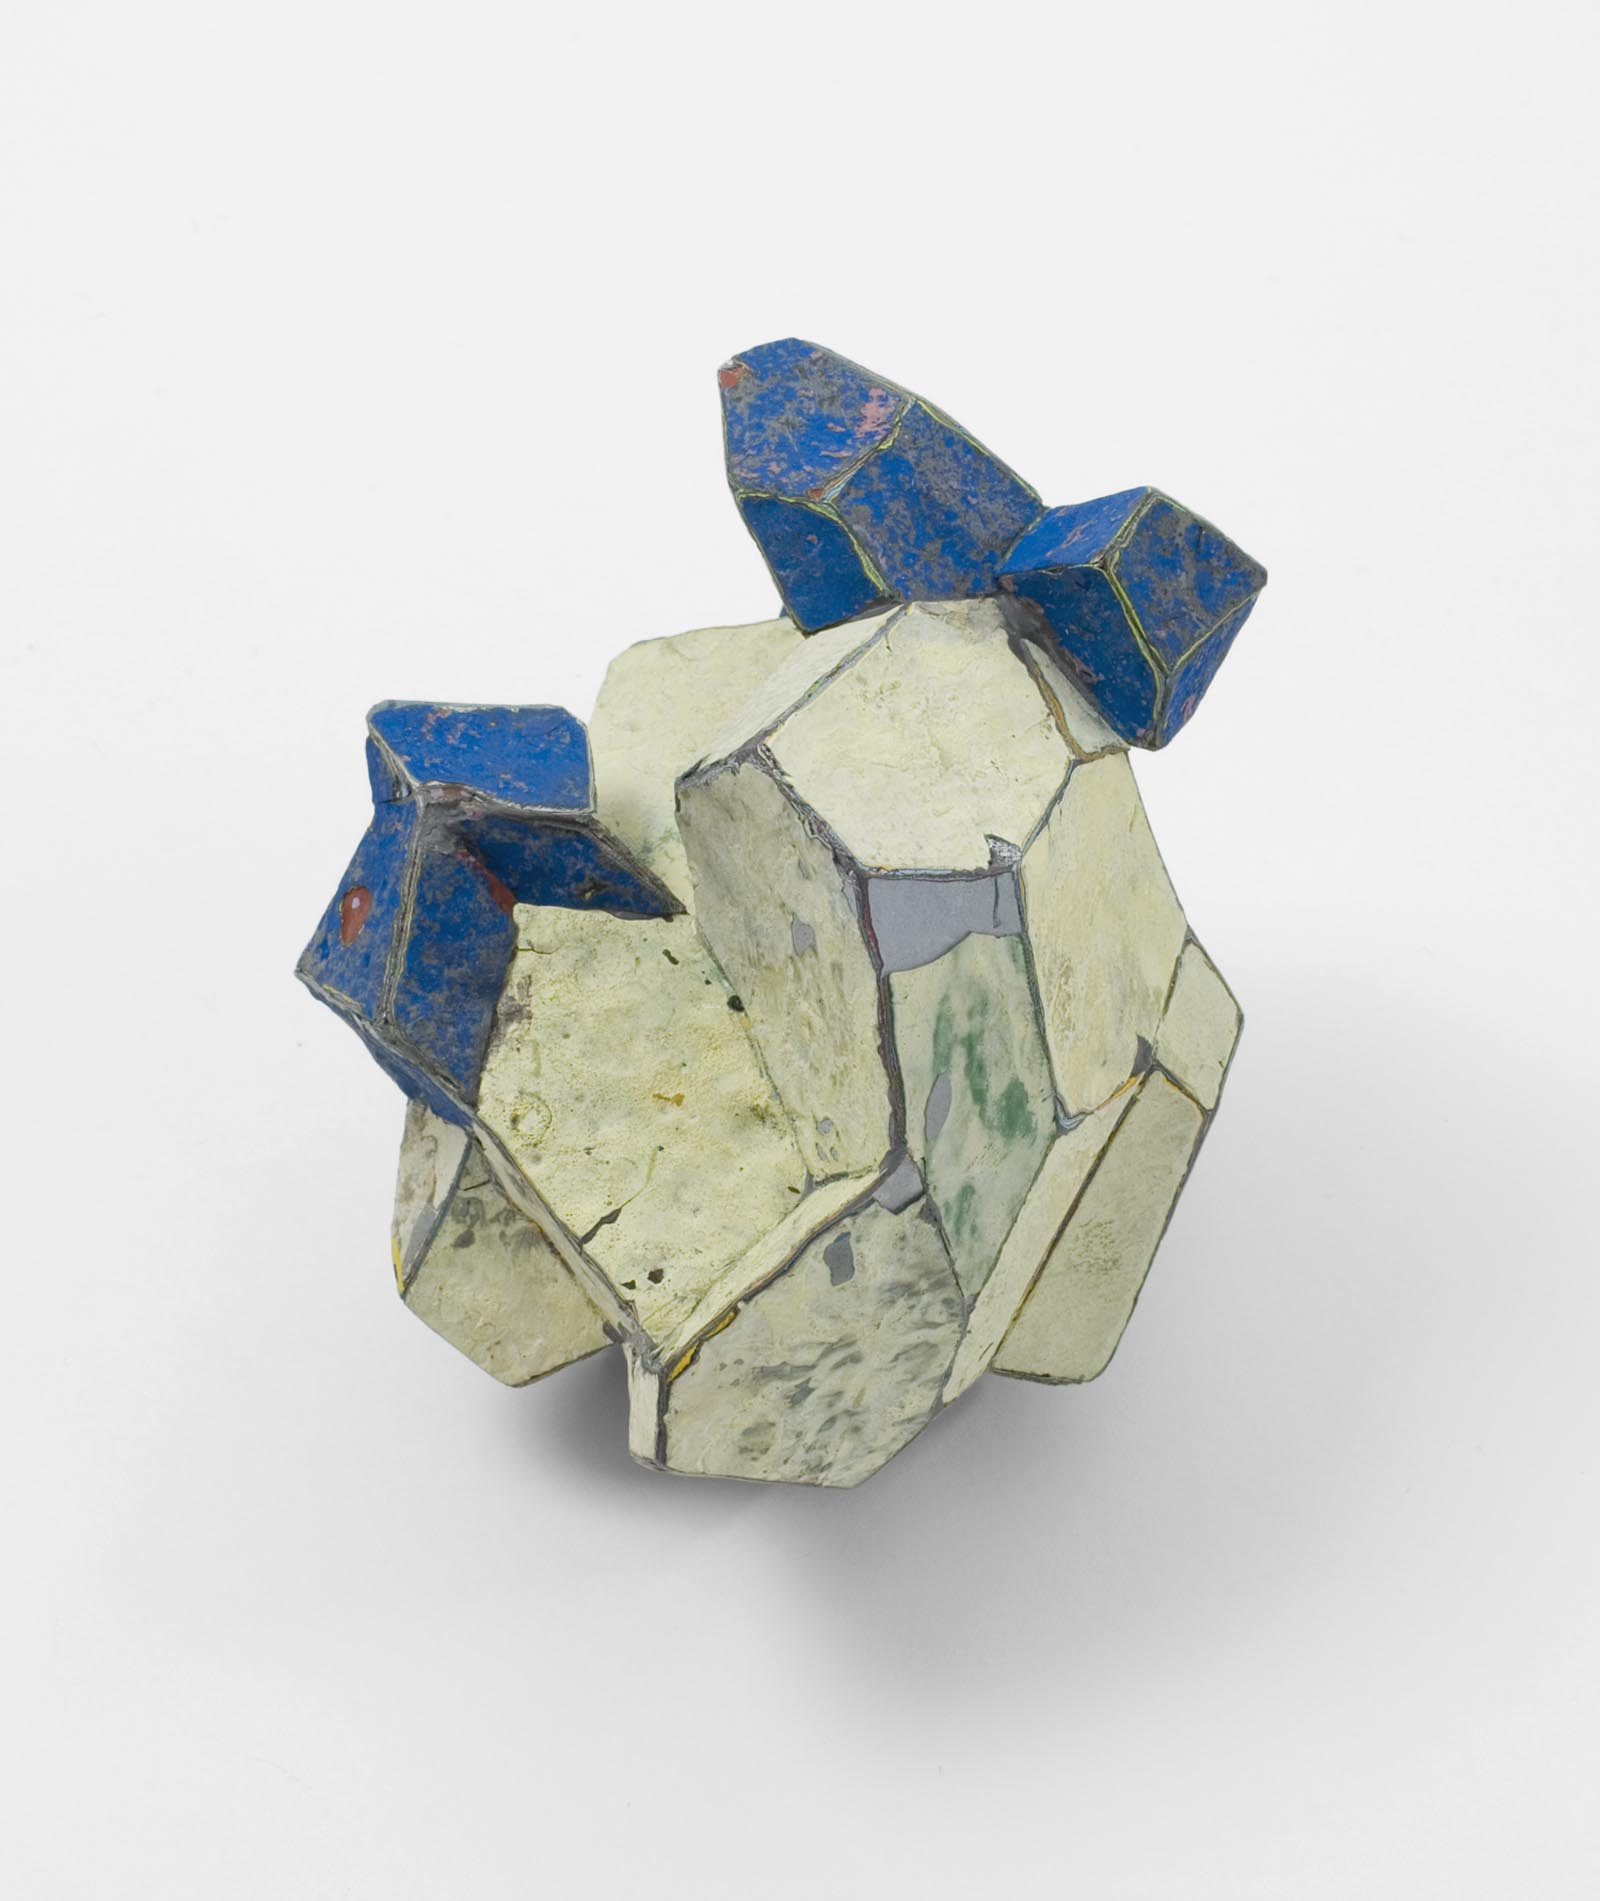 """Yellow & Blue"" I Brooch, 2011 I Graffiti, silver, stainless steel I Photo: Mirei Takeuchi"